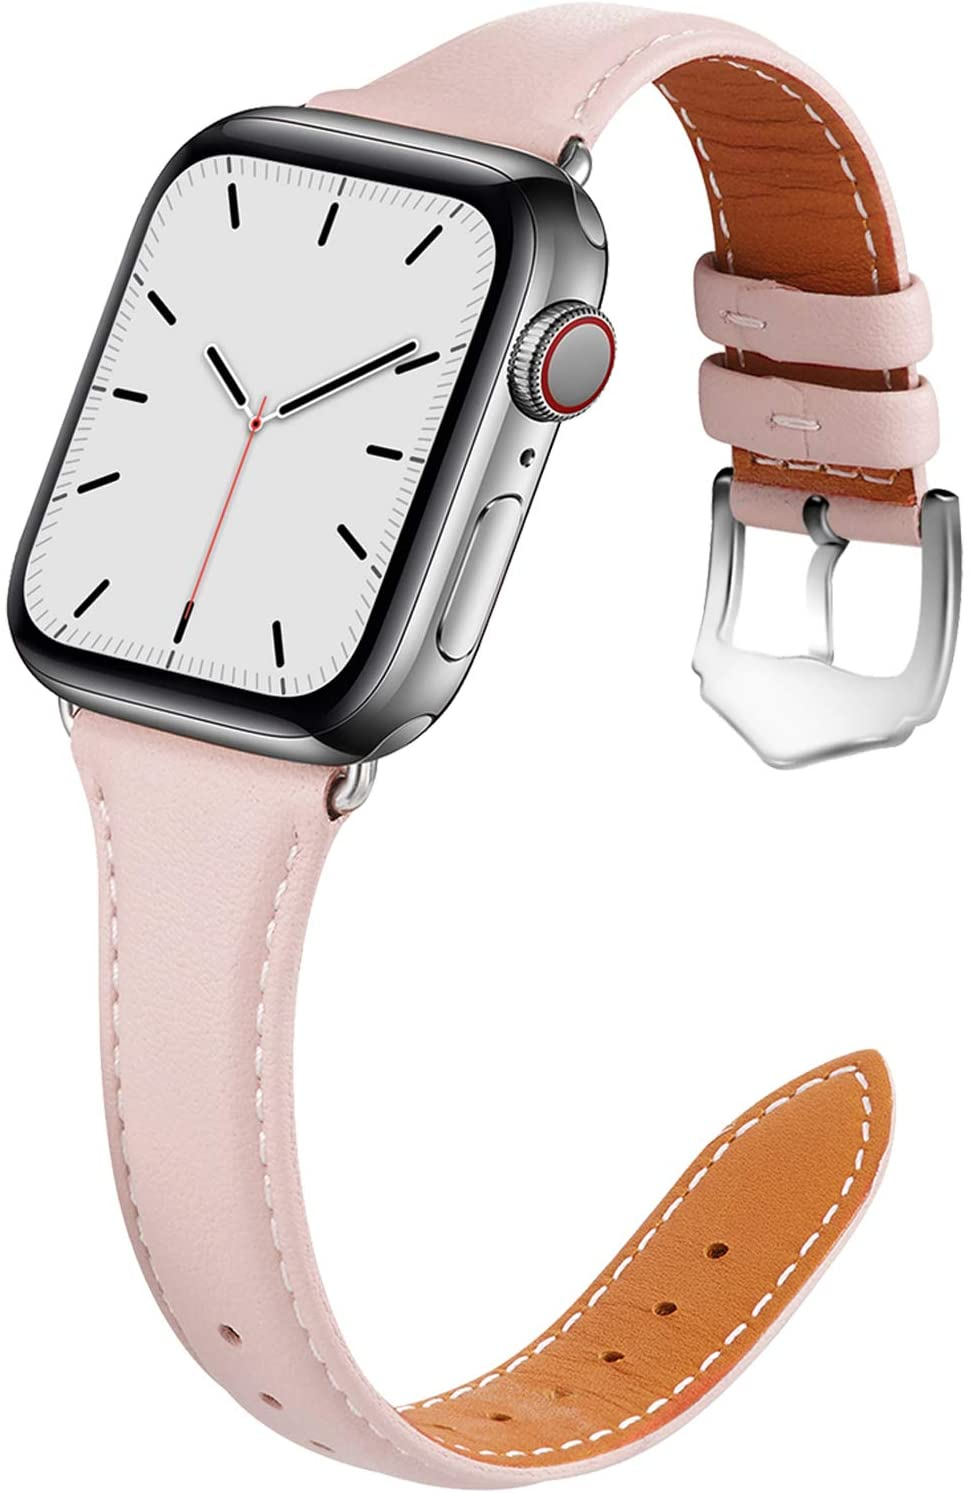 Compatible with Apple Watch Band 38mm 40mm Women for Series 5 4 3 2 1. Pierre Case for iWatch Bands Durable Genuine Leather Replacement Strap (Pink)